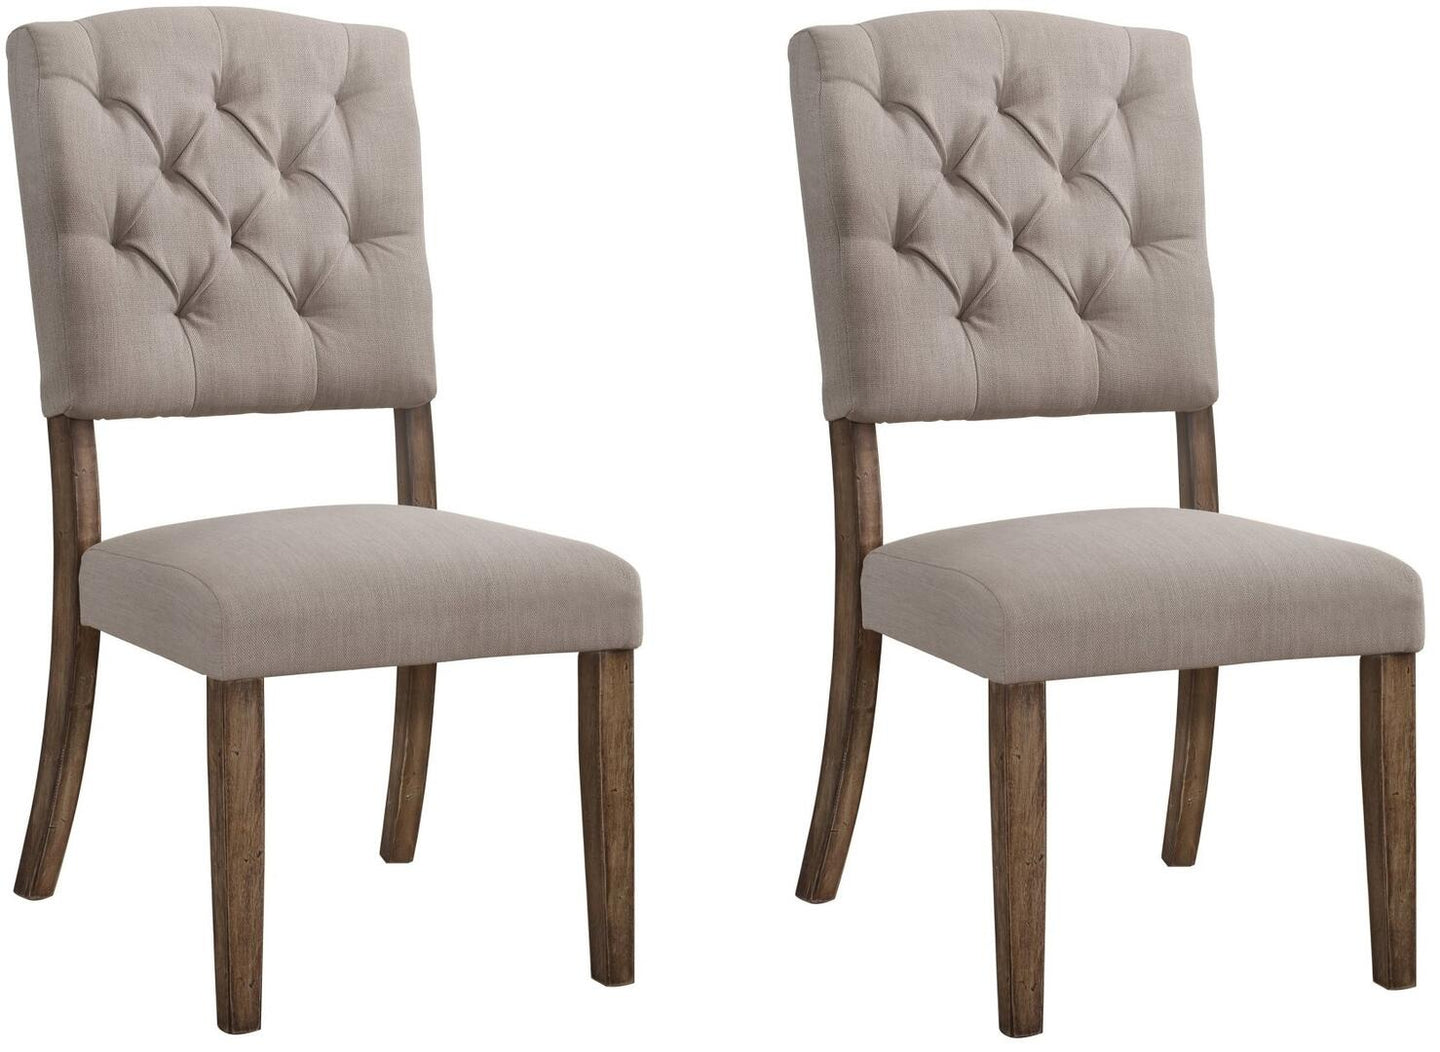 Acme Bernard Beige Fabric Finish Dining Side Chair Set of 2